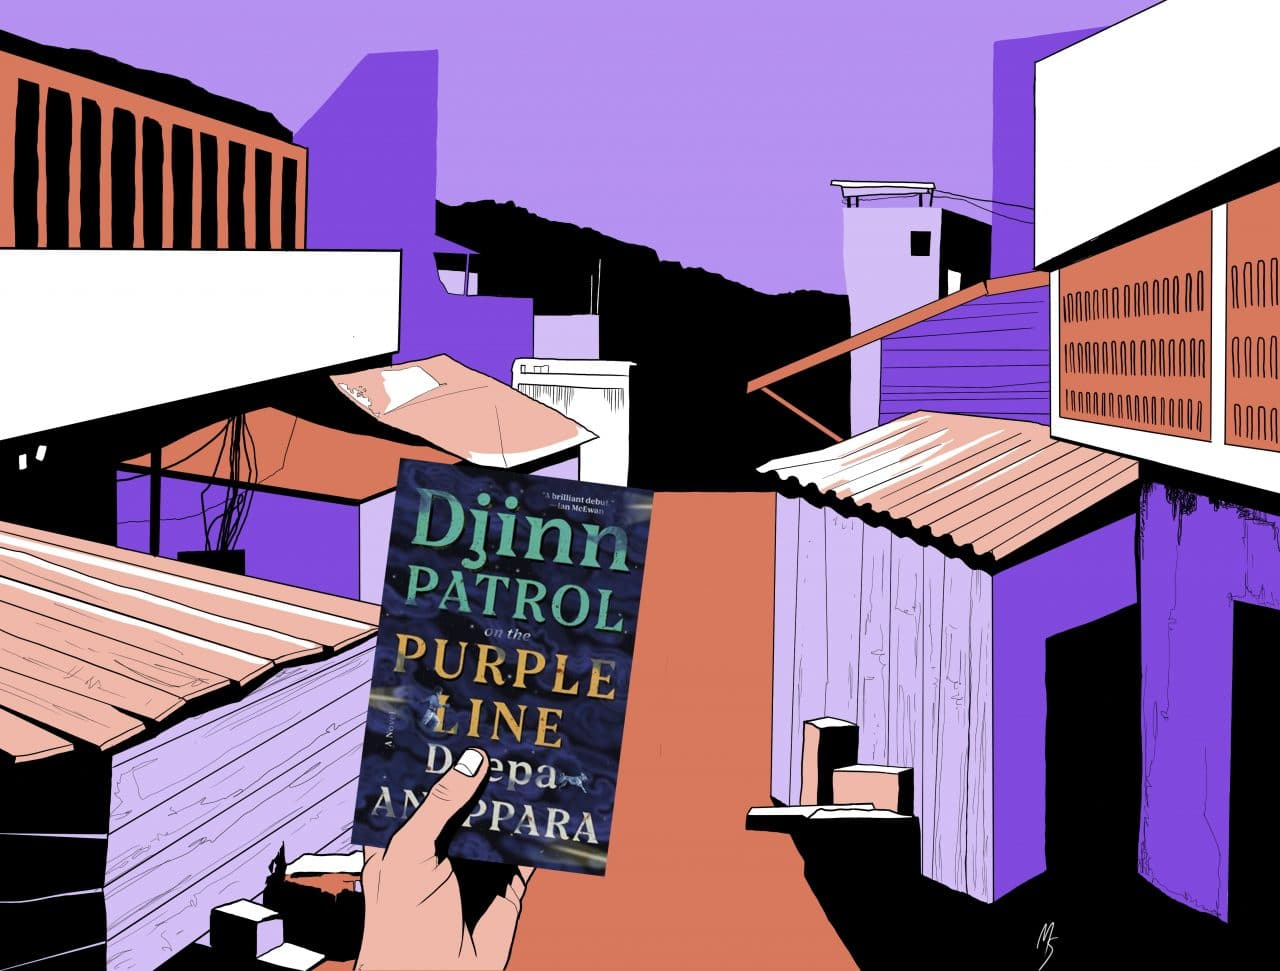 Djinn Patrol on the Purple Line by Deepa Anappara.